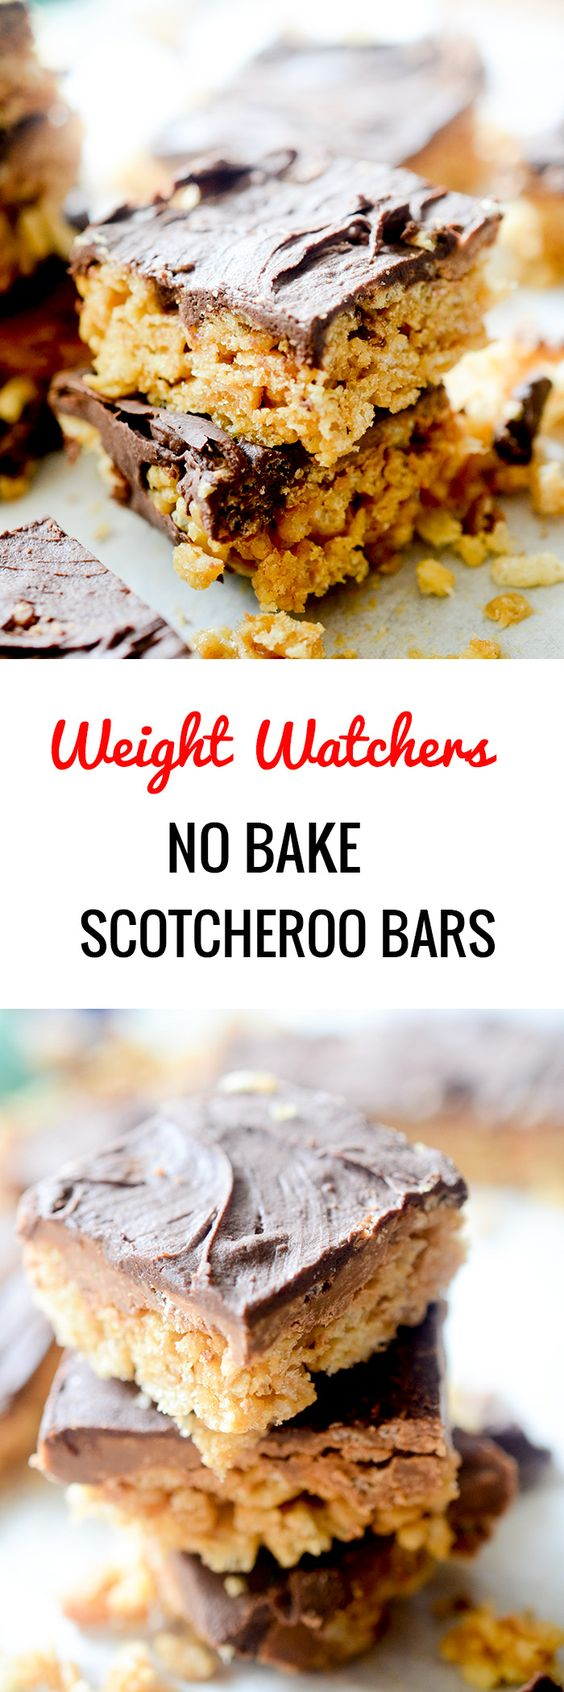 Weight Watchers No Bake Scotcheroo Bars - Recipe Diaries